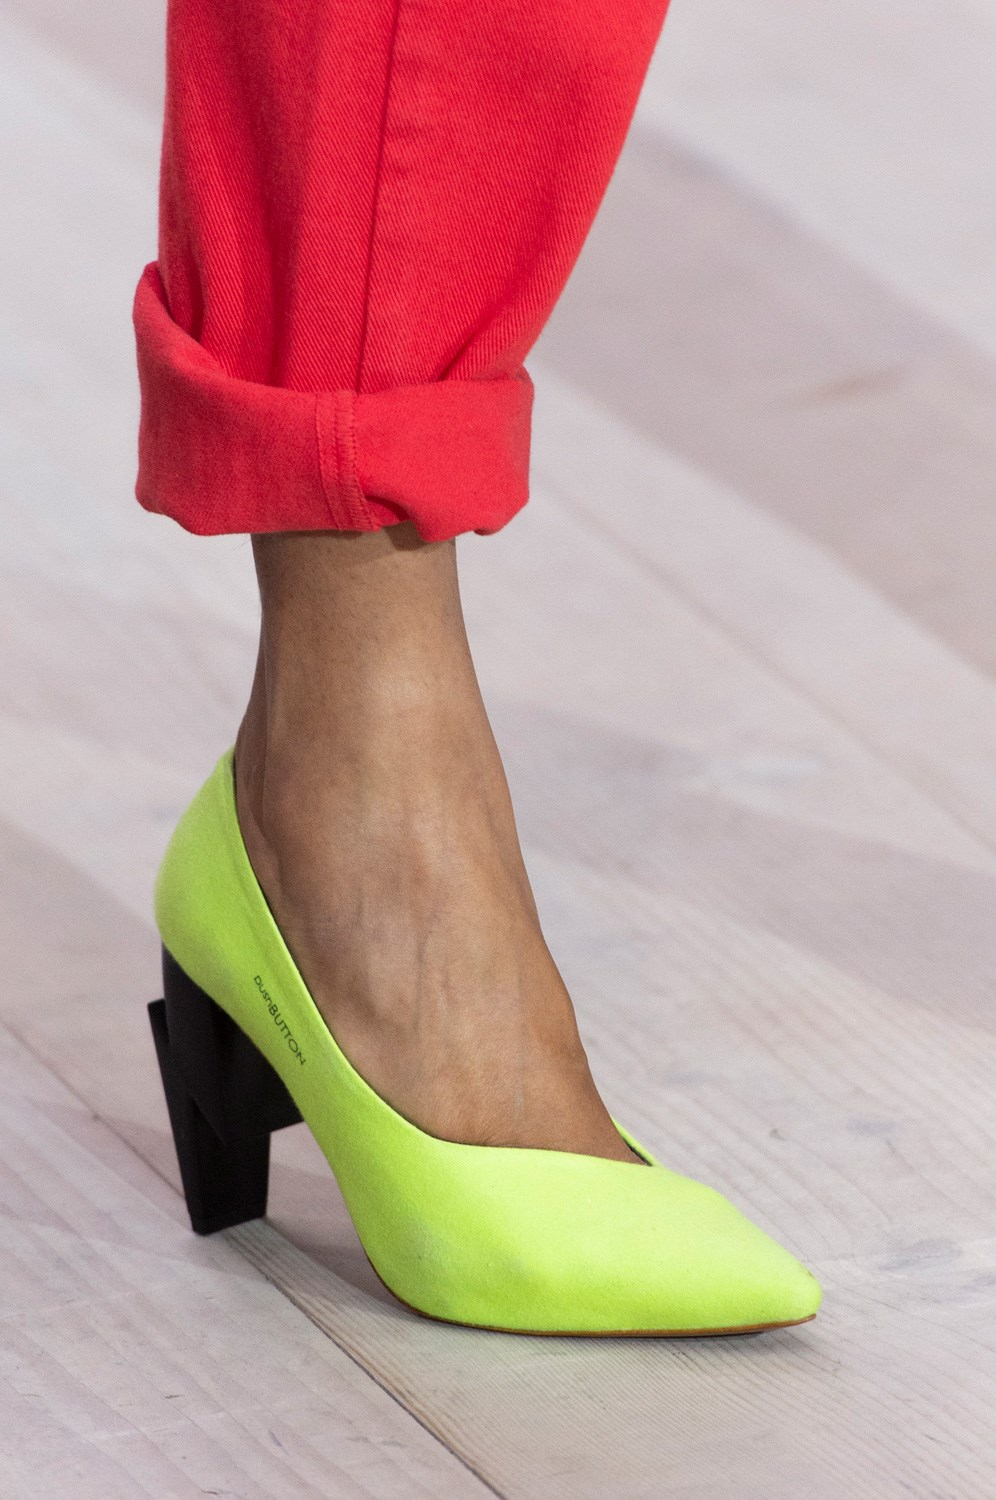 Pushbutton Spring 2020 Fashion Show Details